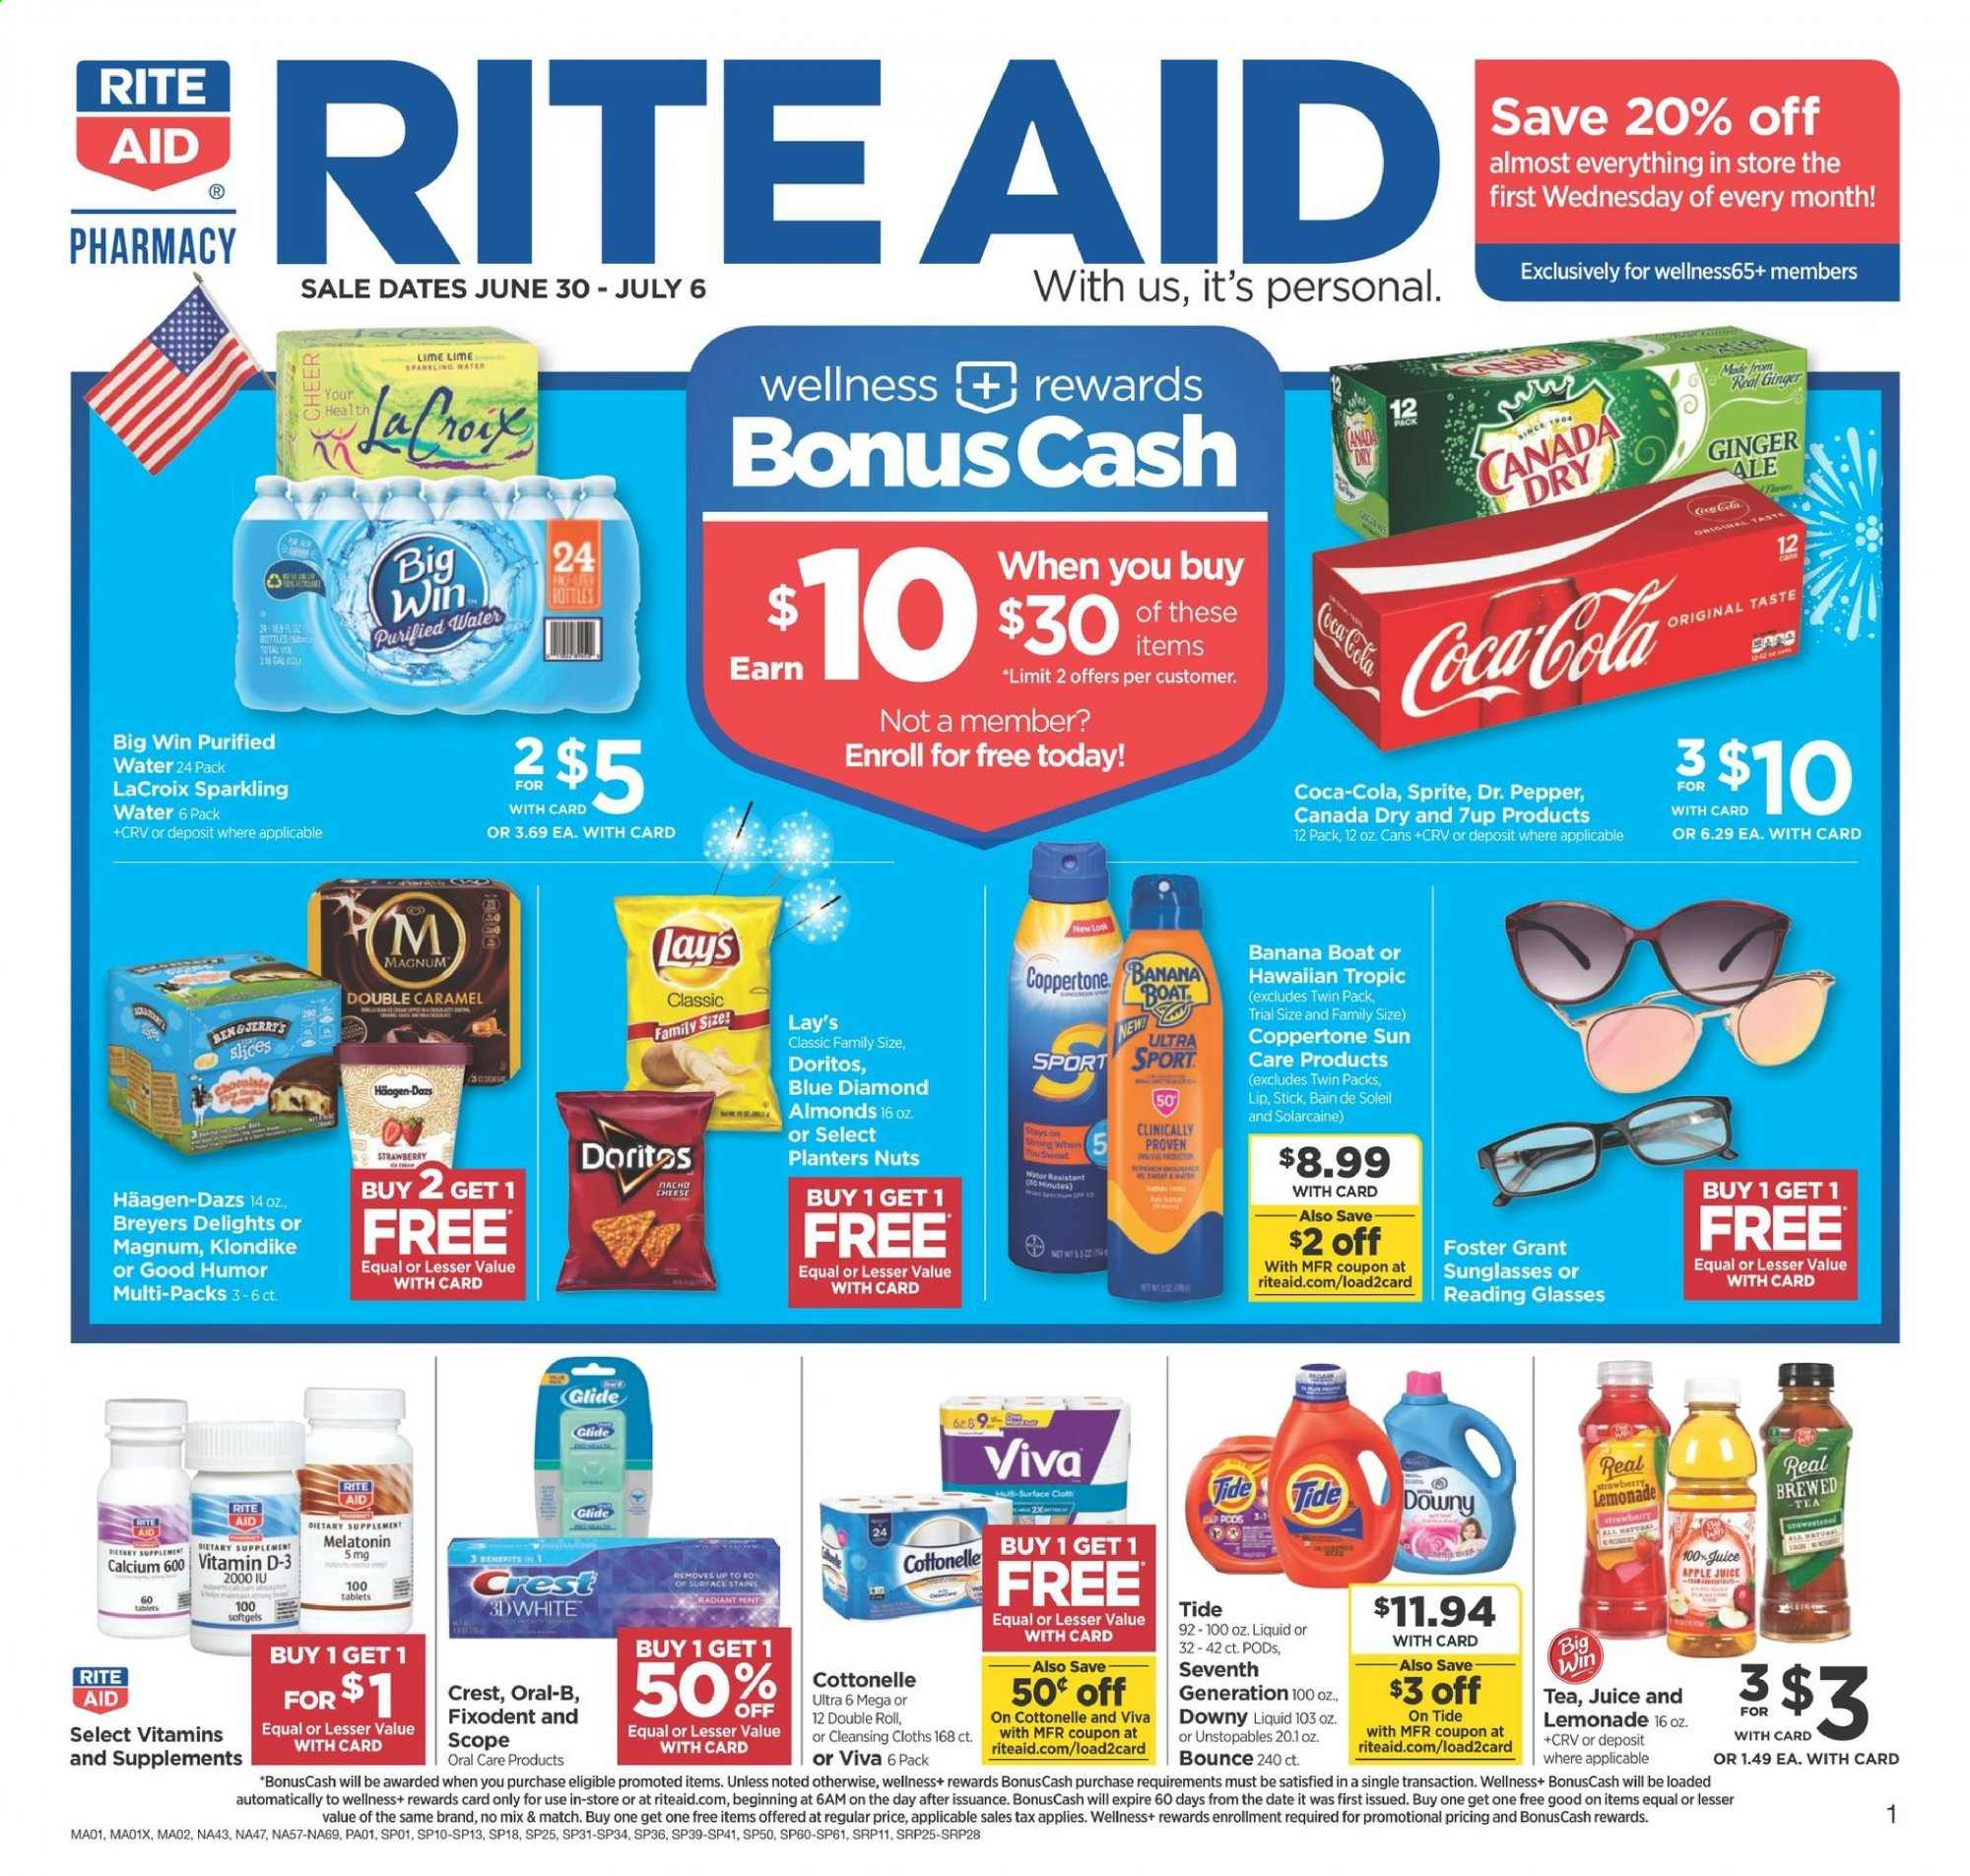 RITE AID Flyer - 06.30.2019 - 07.06.2019 - Sales products - Magnum, chocolate, Doritos, Lay's, strawberries, ginger, pepper, almonds, nuts, apple juice, Canada Dry, Coca-Cola, ginger ale, lemonade, Sprite, juice, Dr. Pepper, sparkling water, water, tea, Cottonelle, Downy, Tide, Unstopables, Oral-b, Fixodent, glass, sunglasses, glasses, calcium, Melatonin. Page 1.